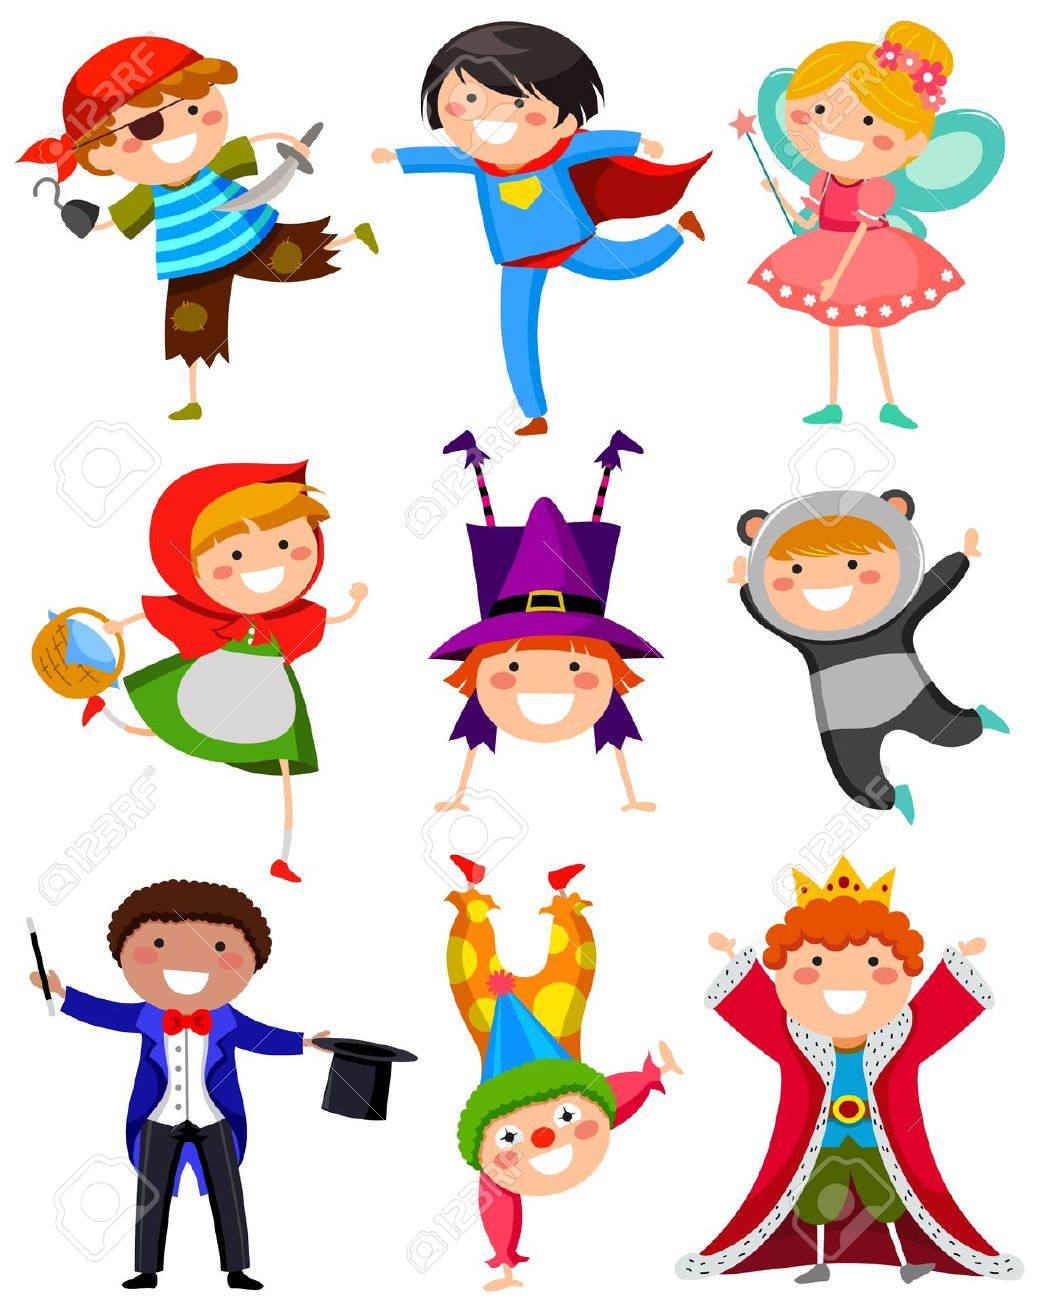 Costume dress clipart - Clipground